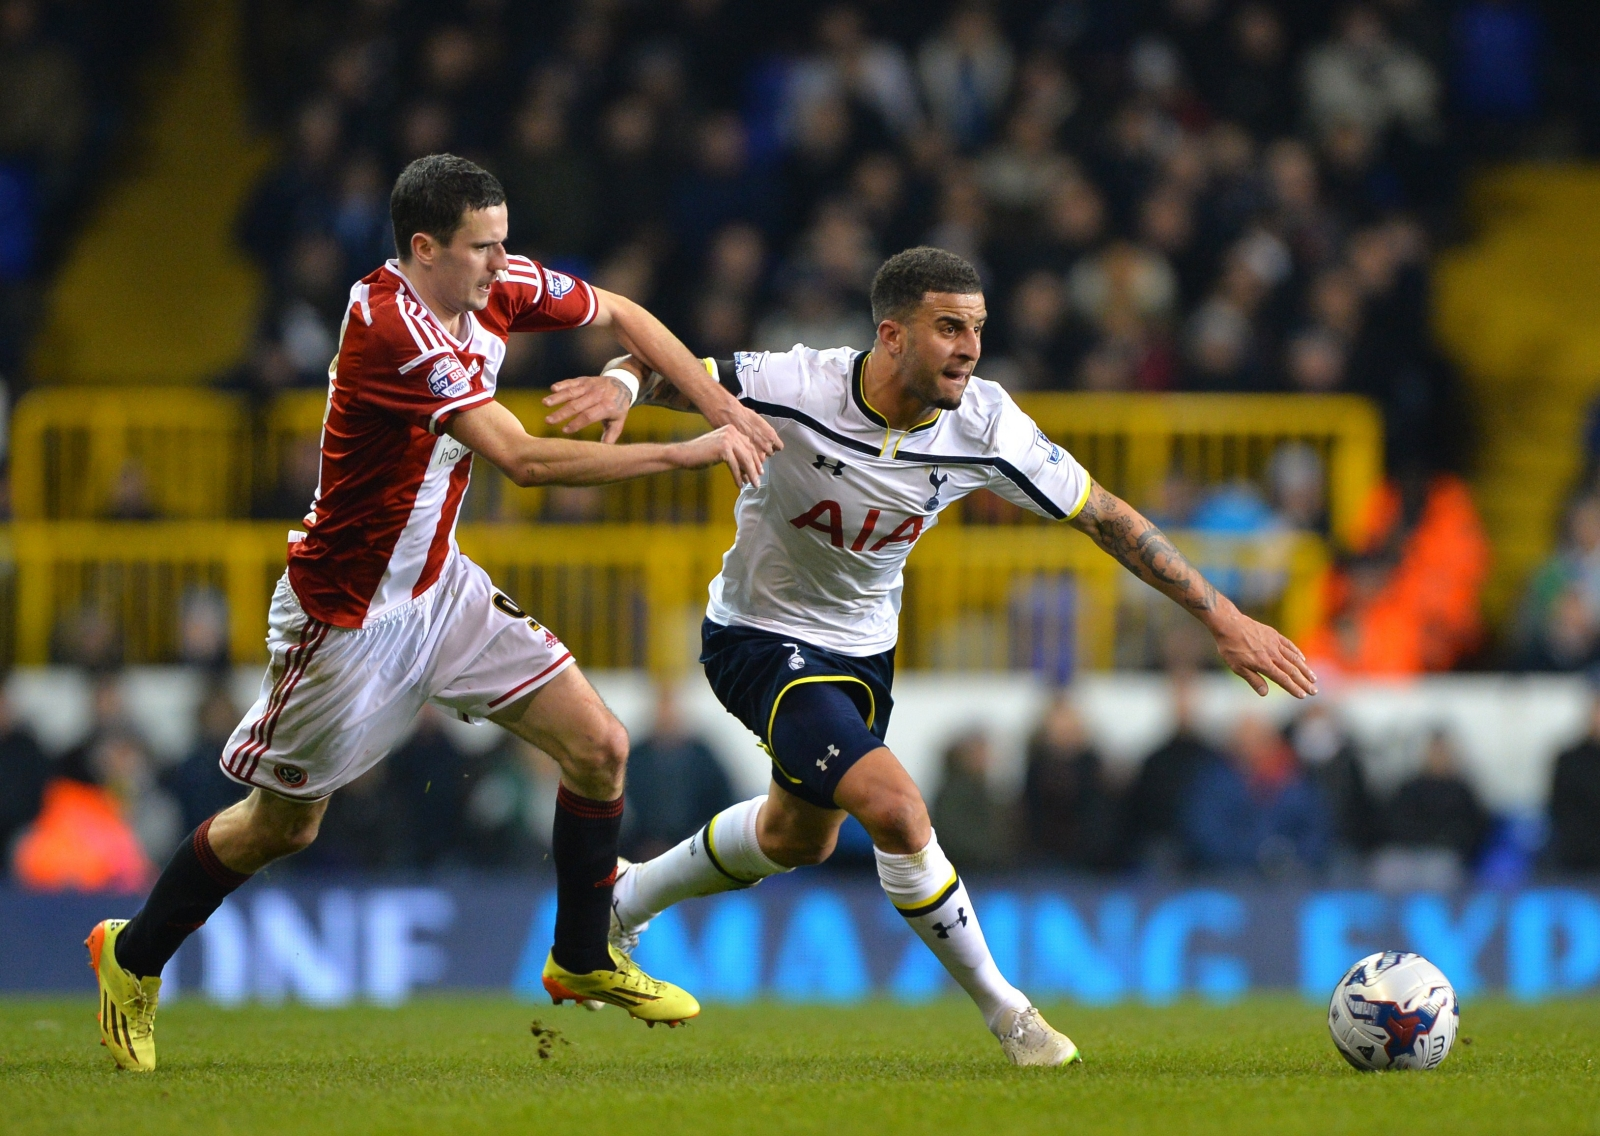 Sheffield United vs Tottenham Hotspur, Capital One Cup ...